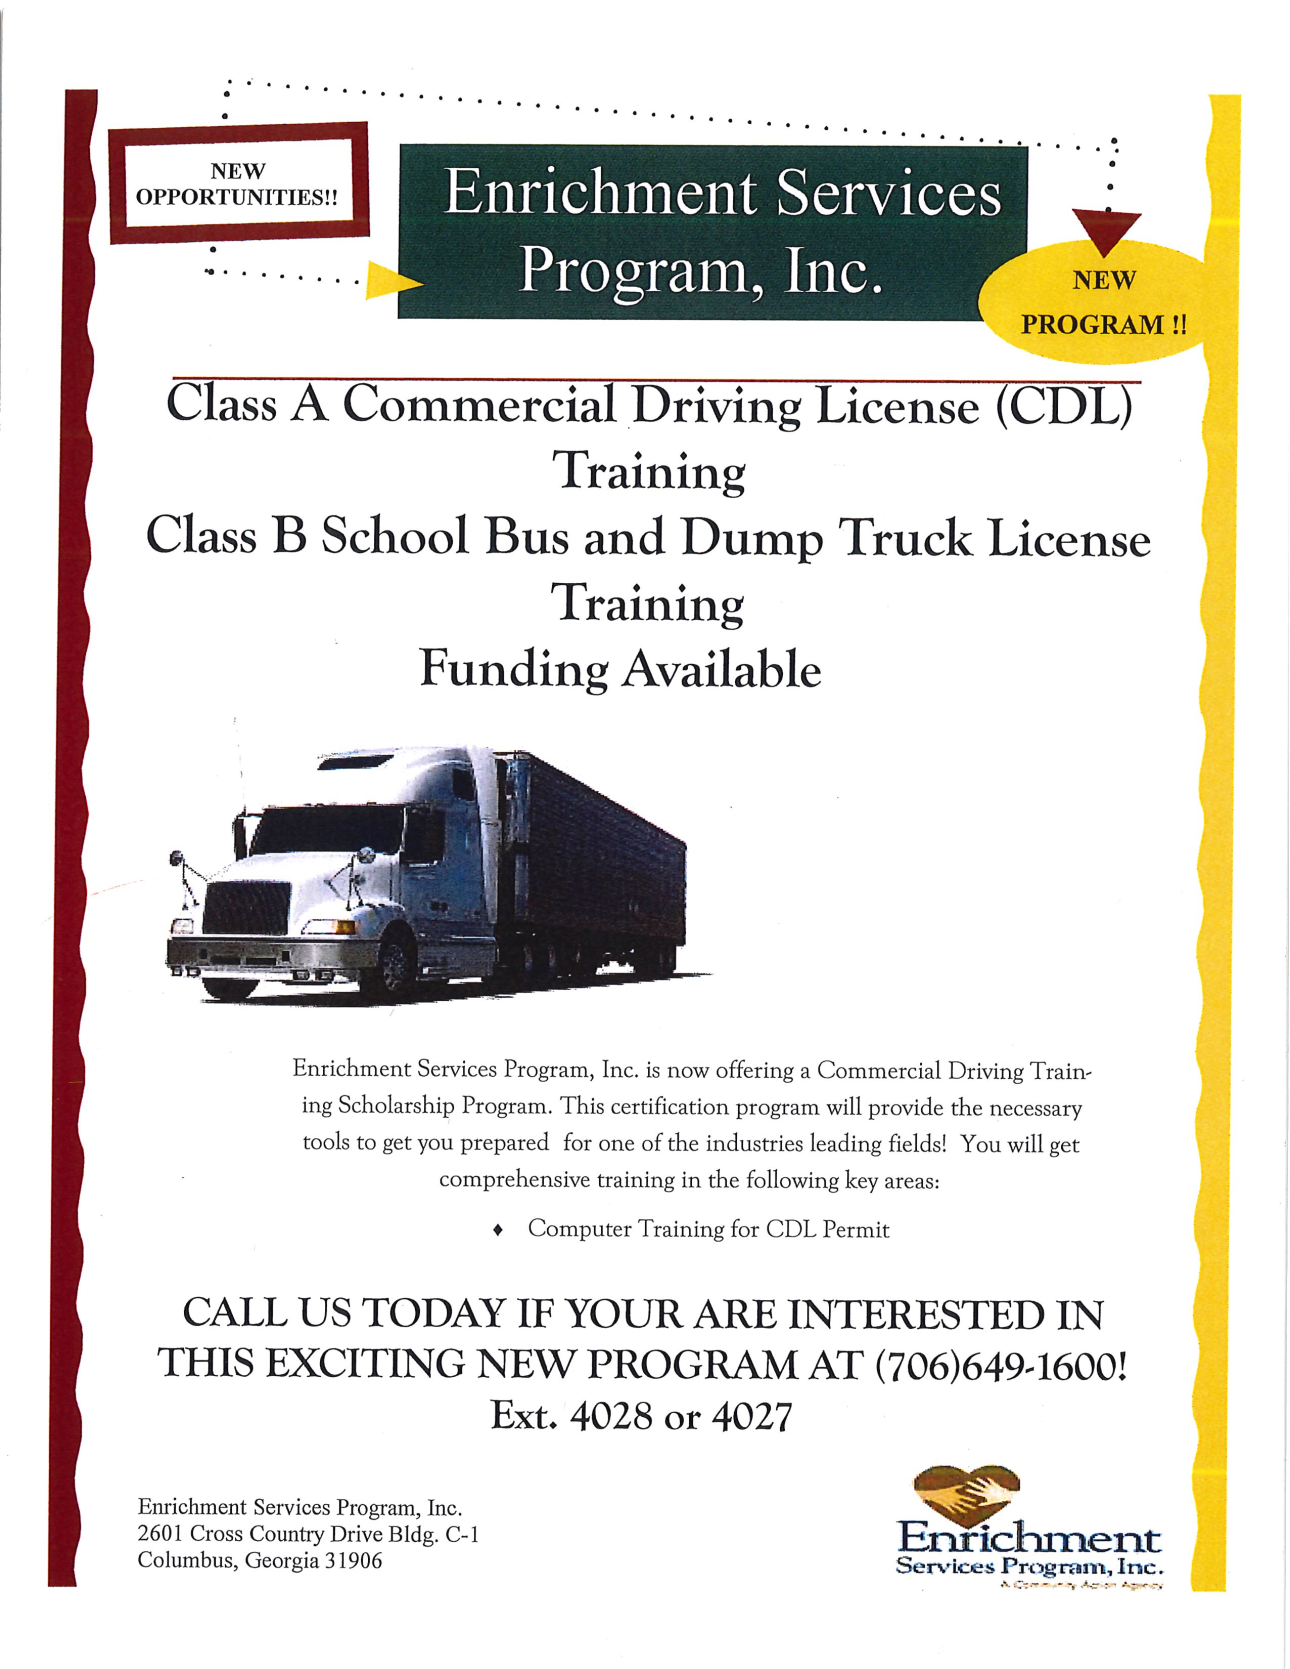 Fw info on cdl training homeless resource network fw info on cdl training 1betcityfo Image collections